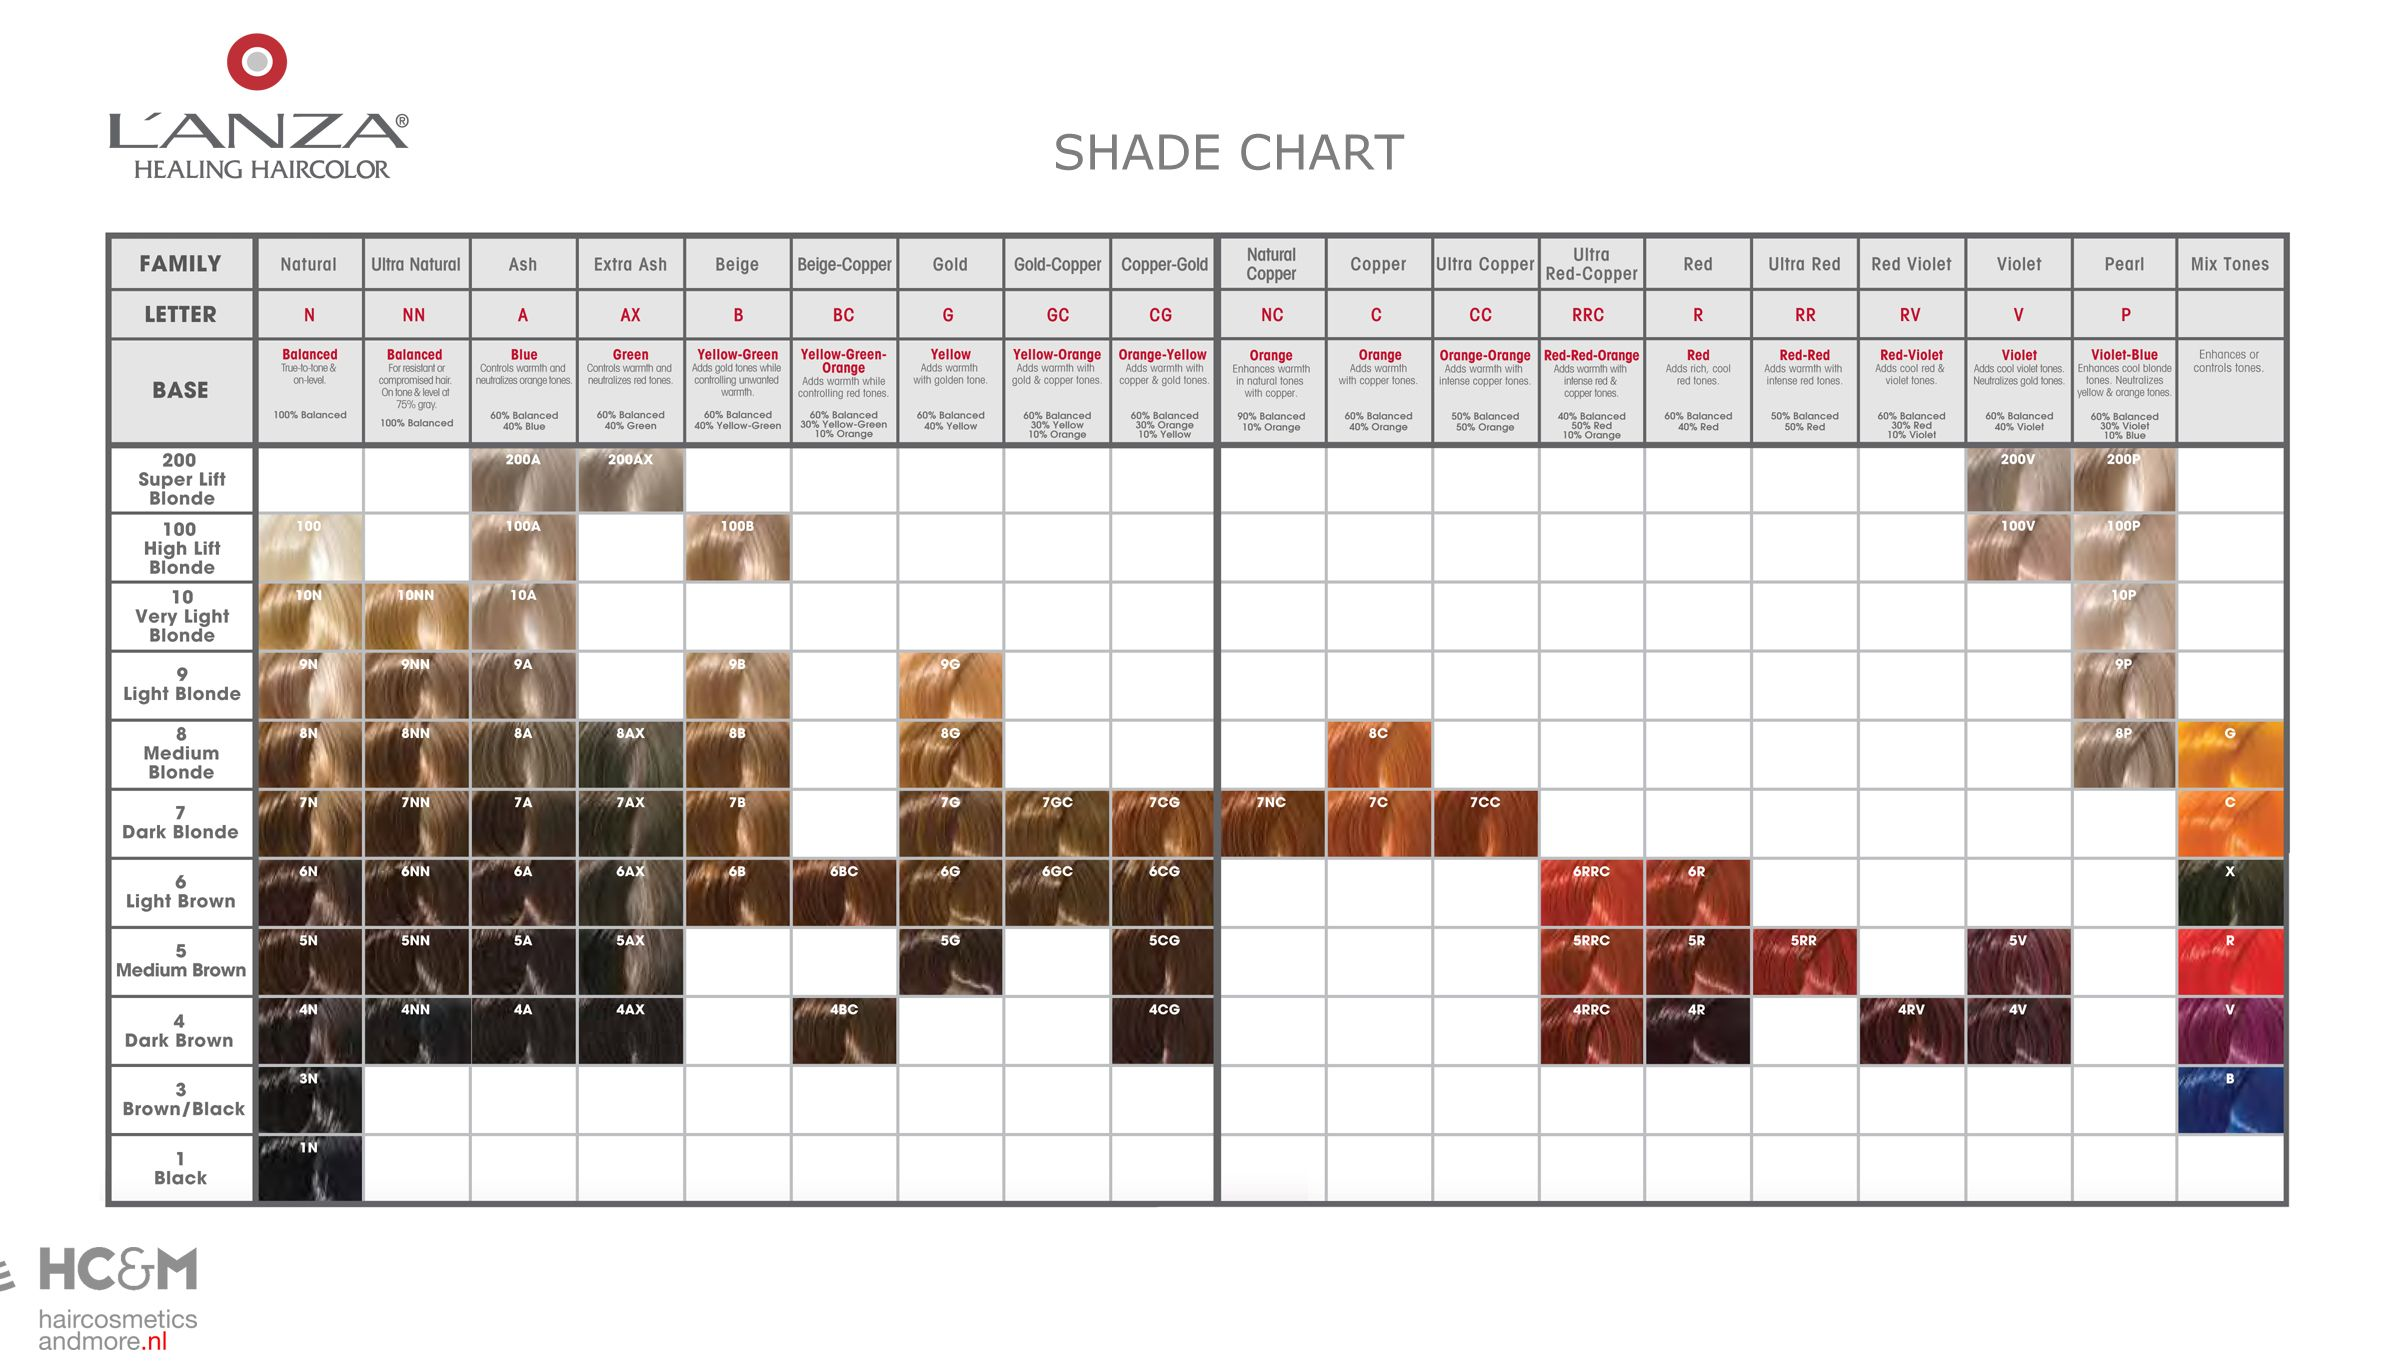 L Anza Healing Haircare Healing Haircolor Shade Chart Hair Color Chart Lanza Hair Color Brown Hair Color Chart